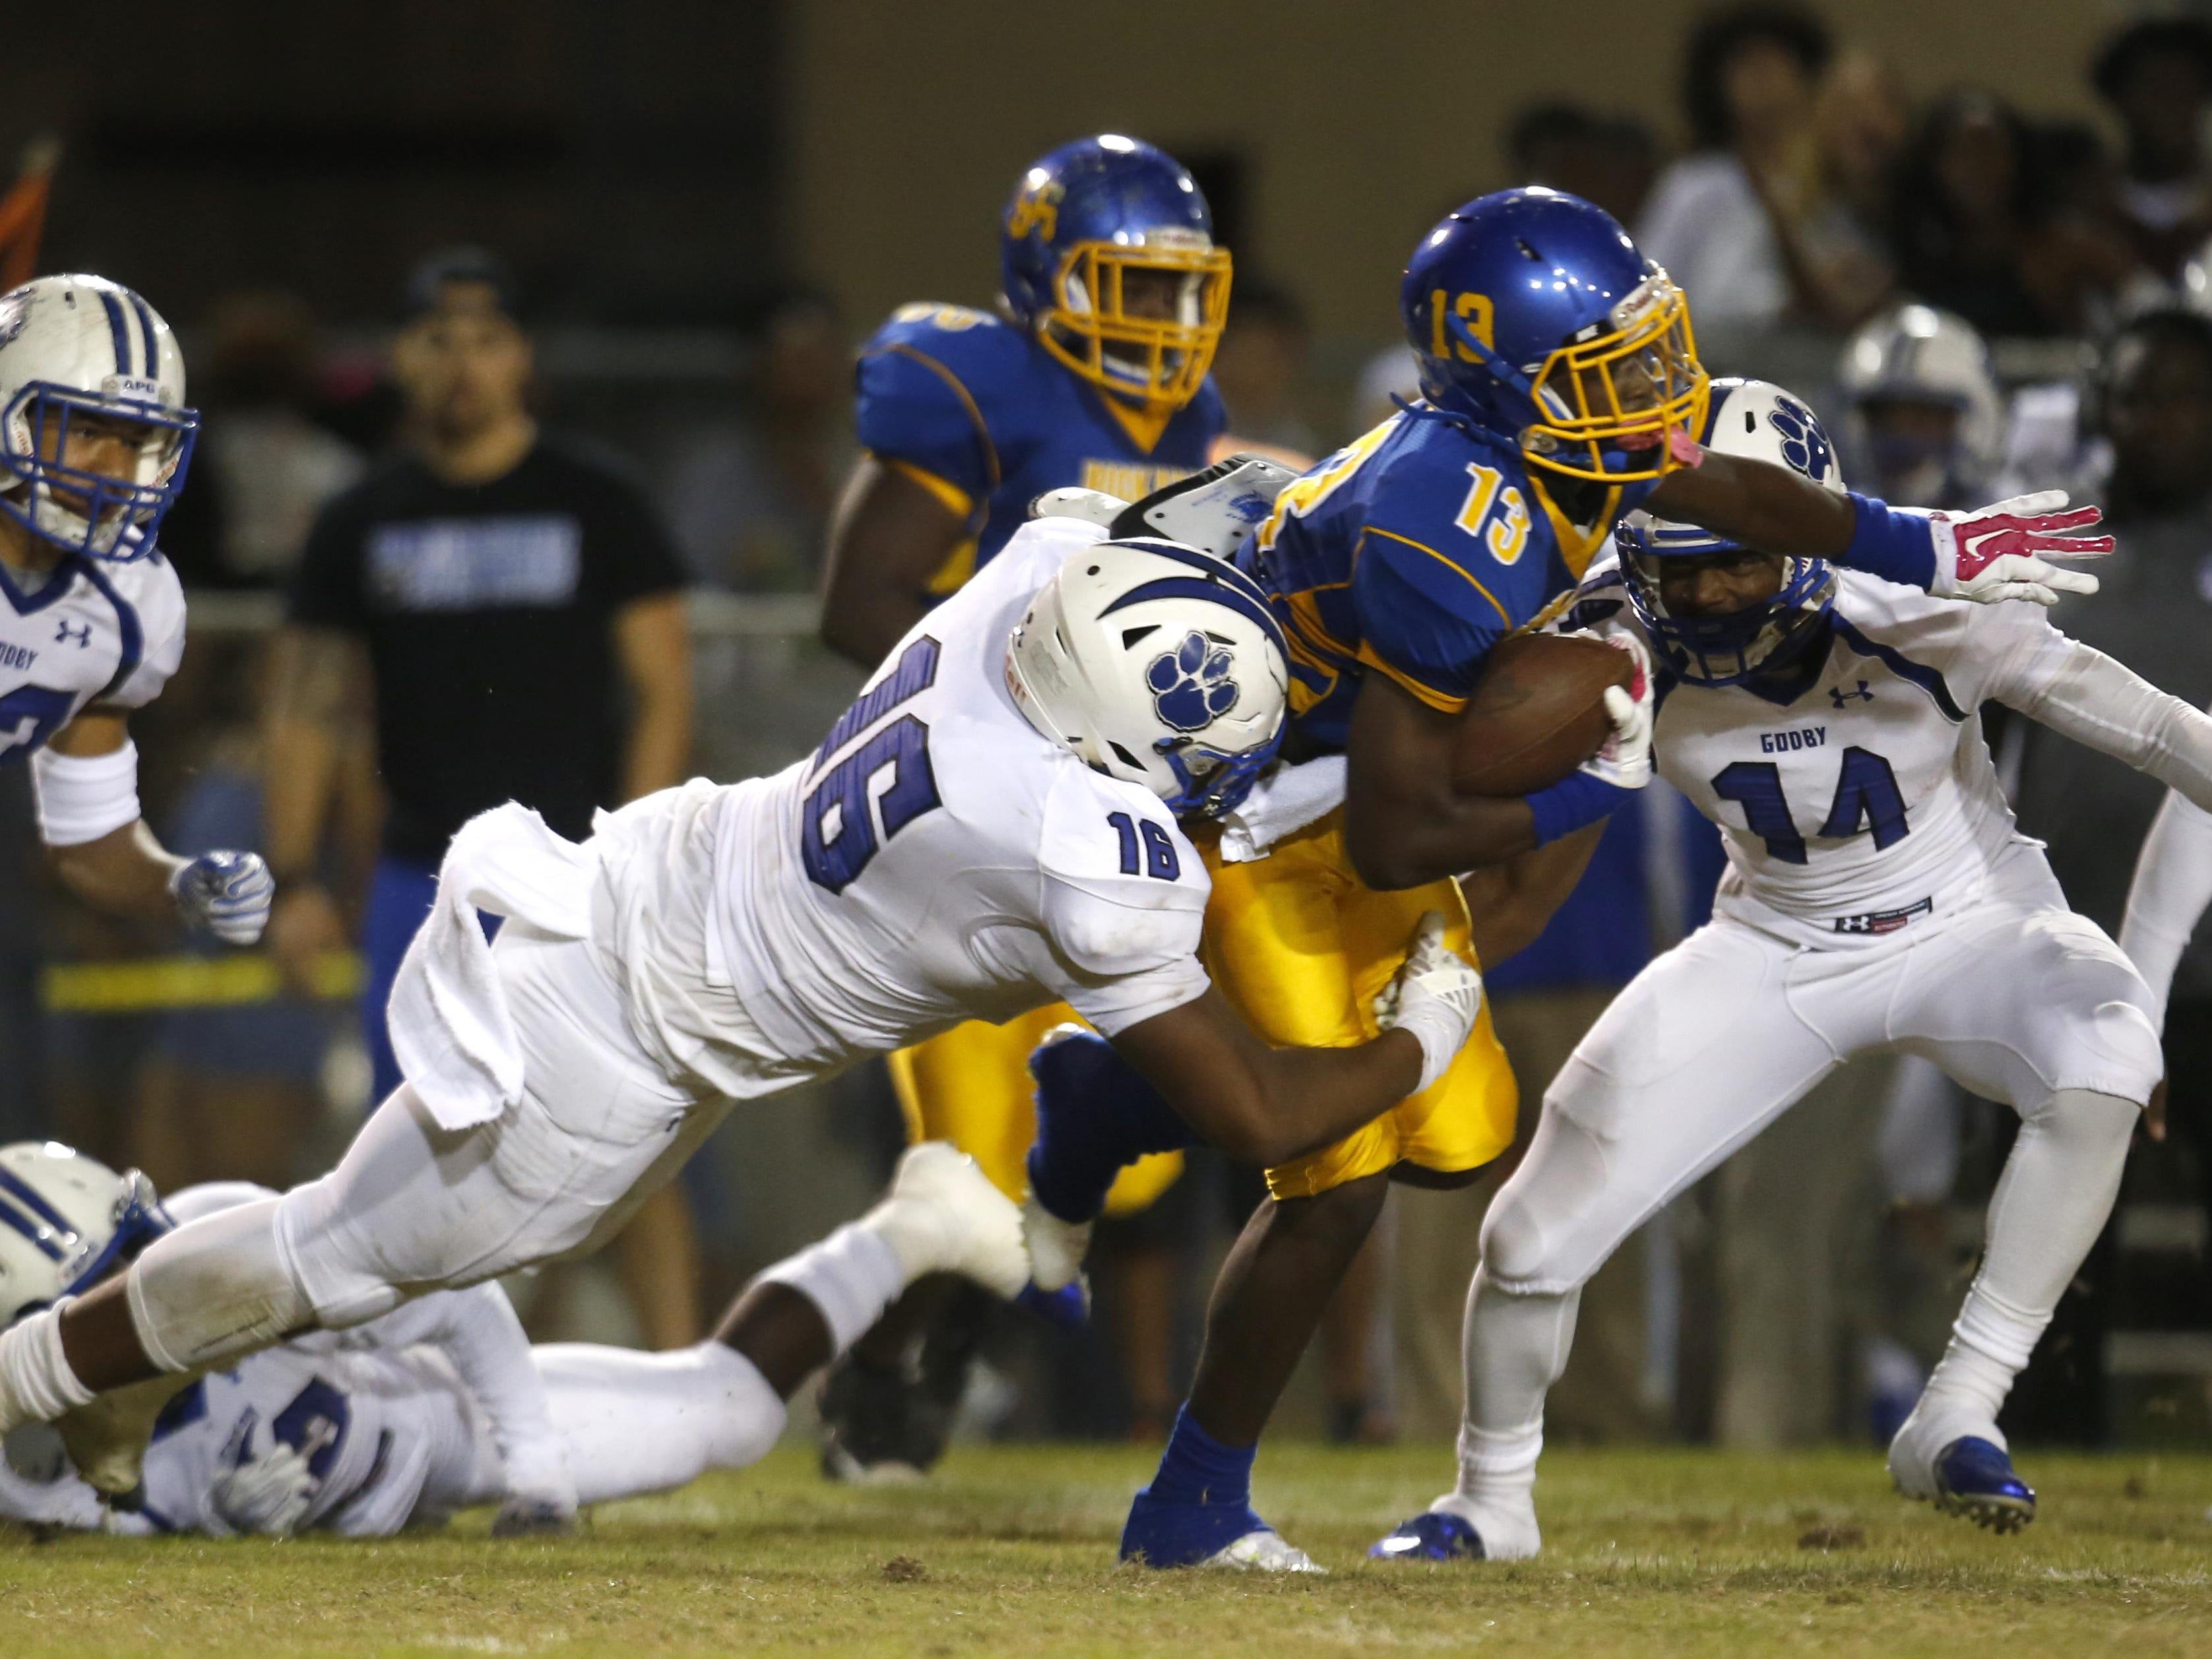 Godby's Antwan Owens tackles Rickards' Chad Hunter after a reception during their game at Cox Stadium on Friday.